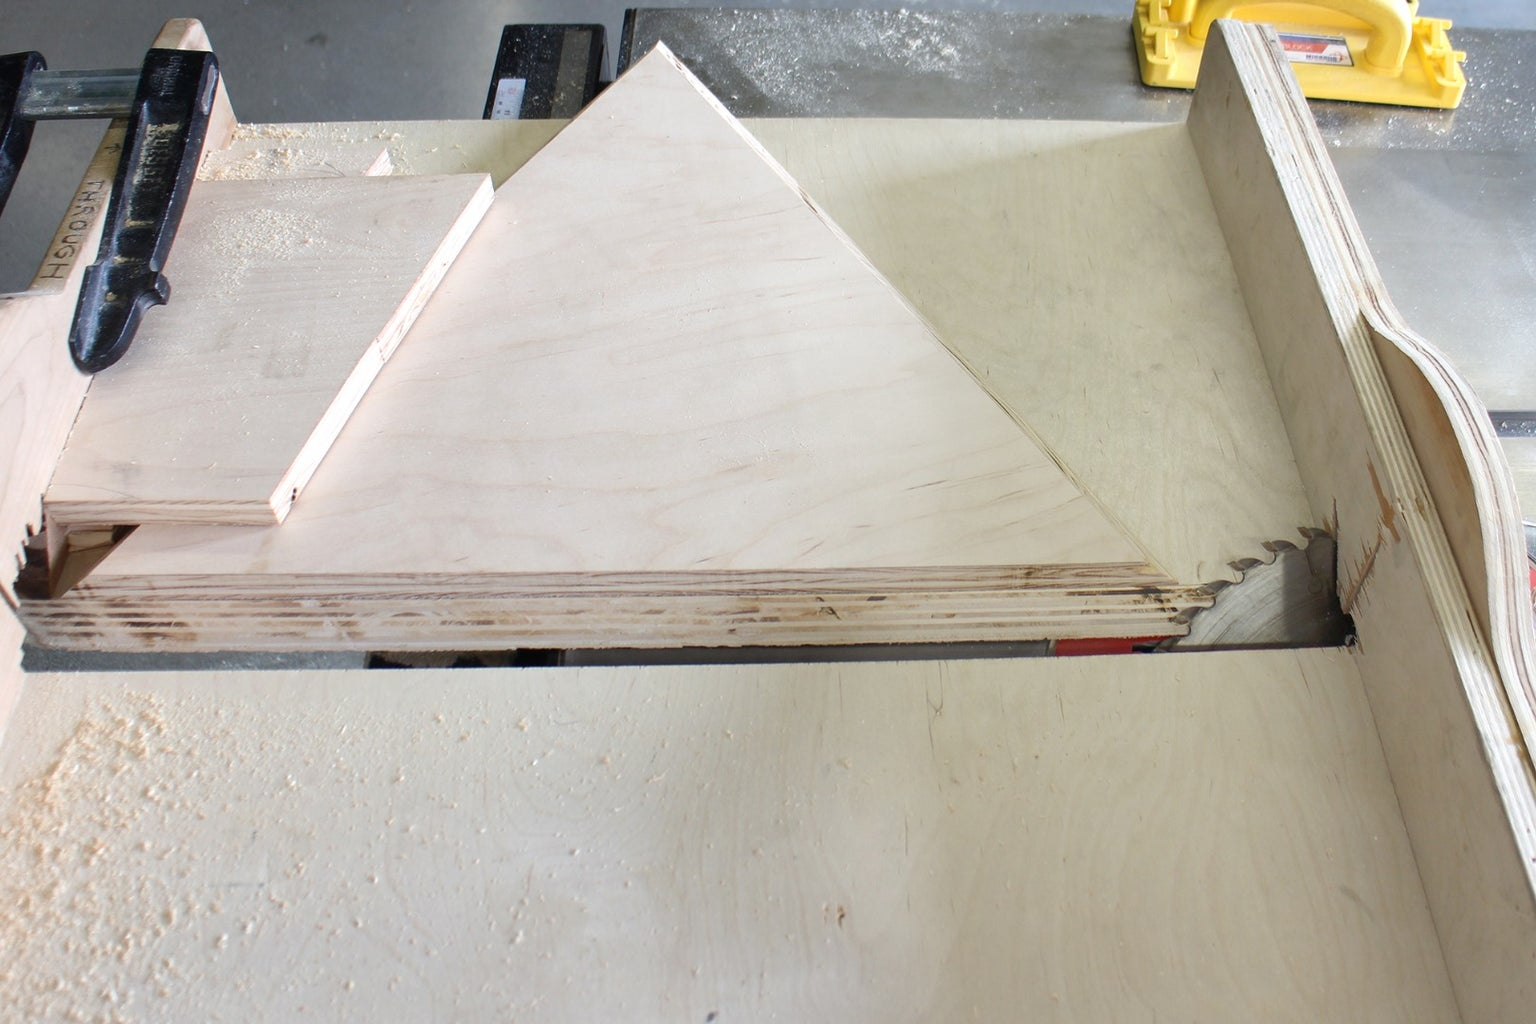 Cut Out on Table Saw